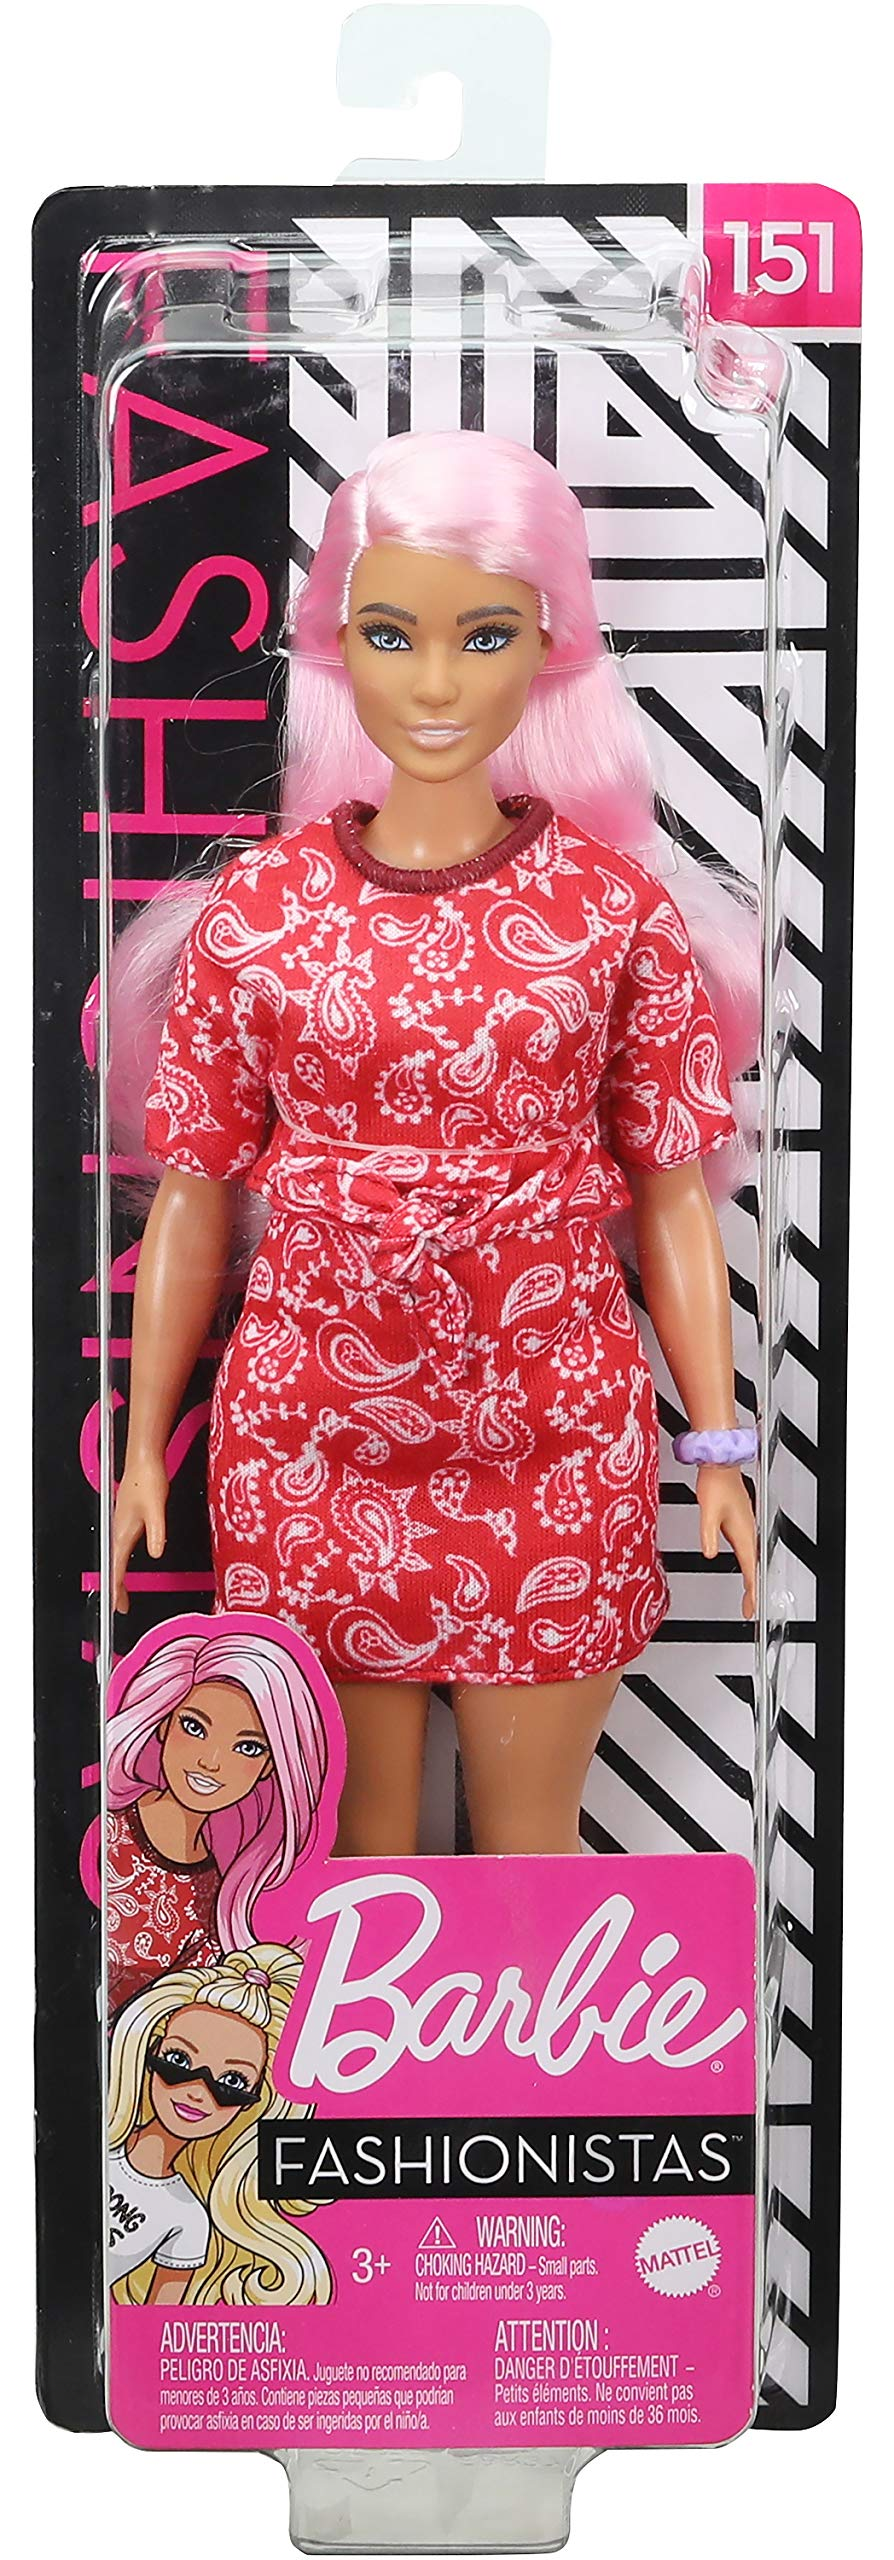 Pink Booties /& Sunglasses Toy for Kids 3 to 8 Years Old Barbie Fashionistas Doll #140 with Long Brunette Hair Wearing Mouse-Print Dress